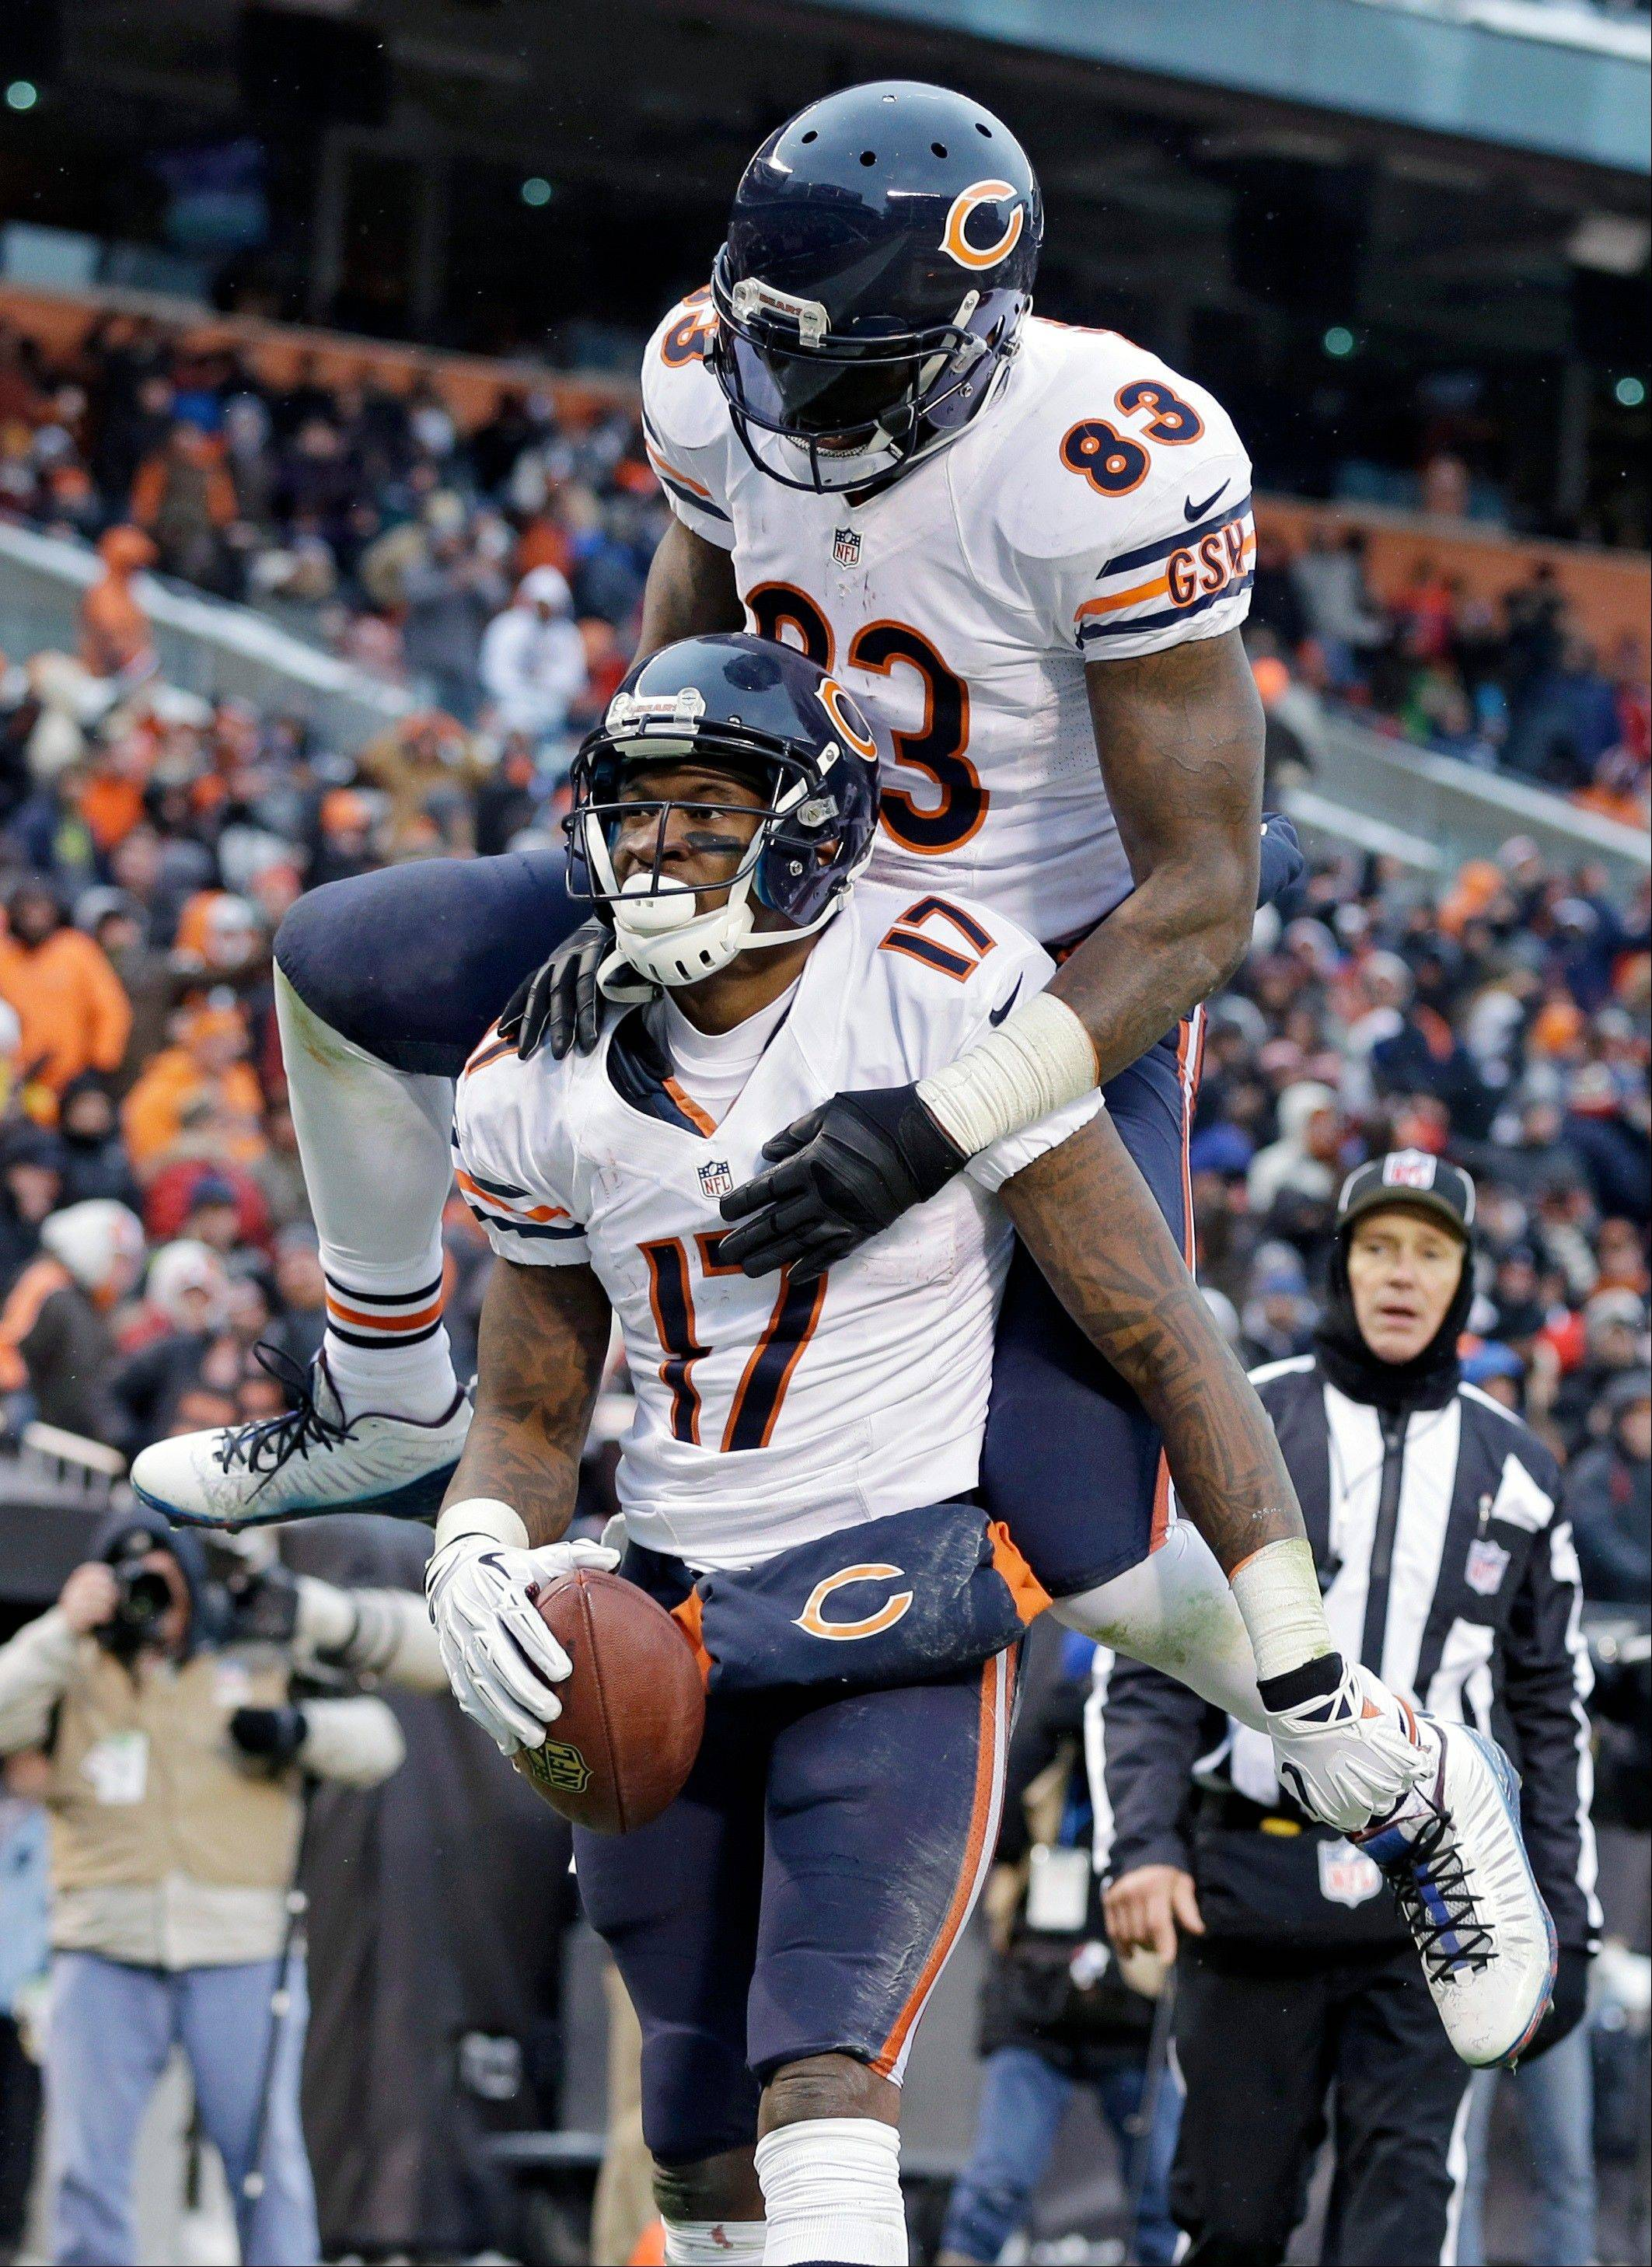 Chicago Bears tight end Martellus Bennett (83) jumps on wide receiver Alshon Jeffery (17) after Jeffrey's 45-yard touchdown catch against the Cleveland Browns in the second half.